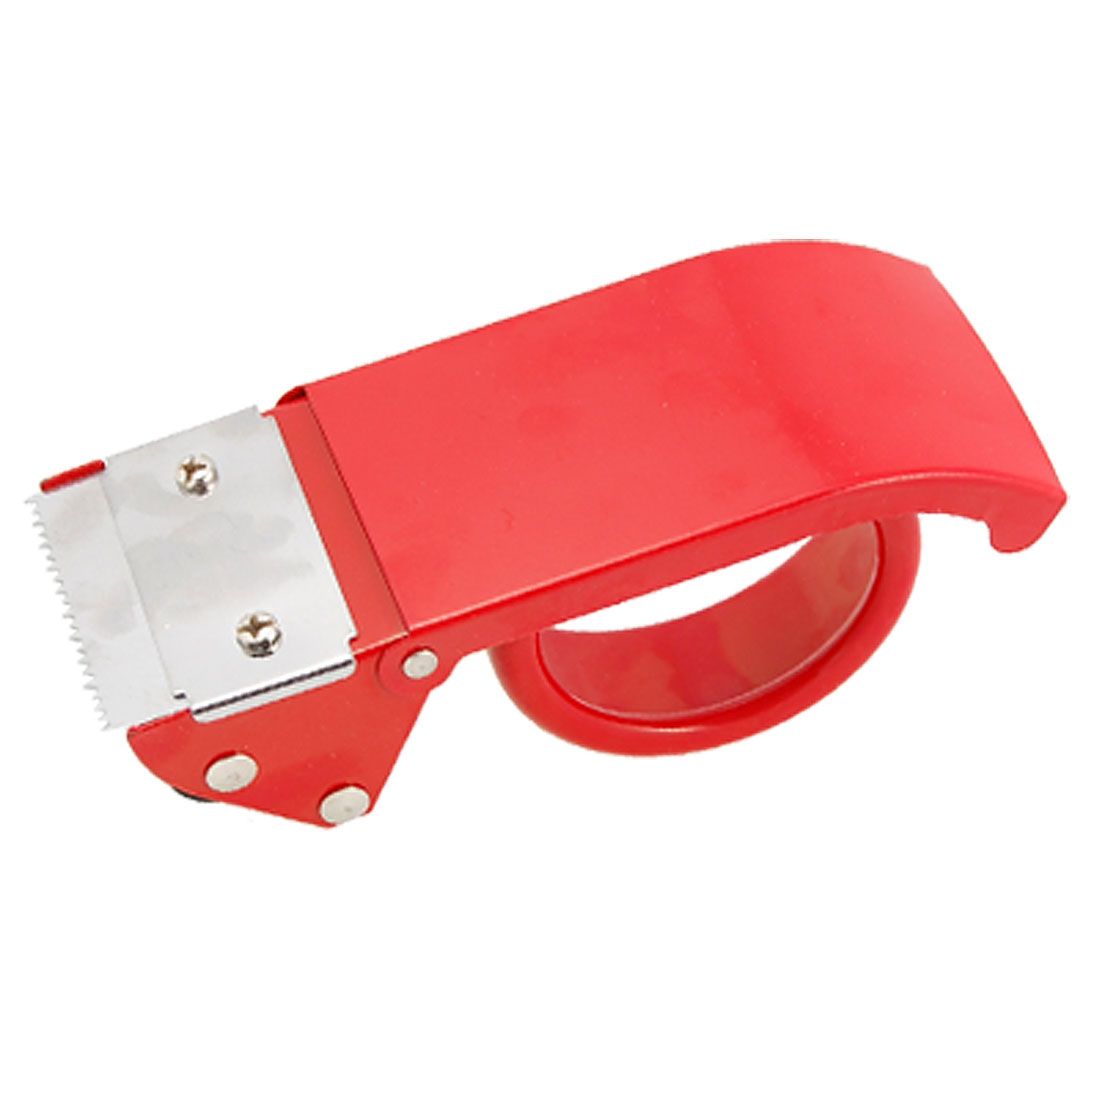 "Red Metal 2"" Wide Packaging Sealing Tape Roll Dispenser Cutter"